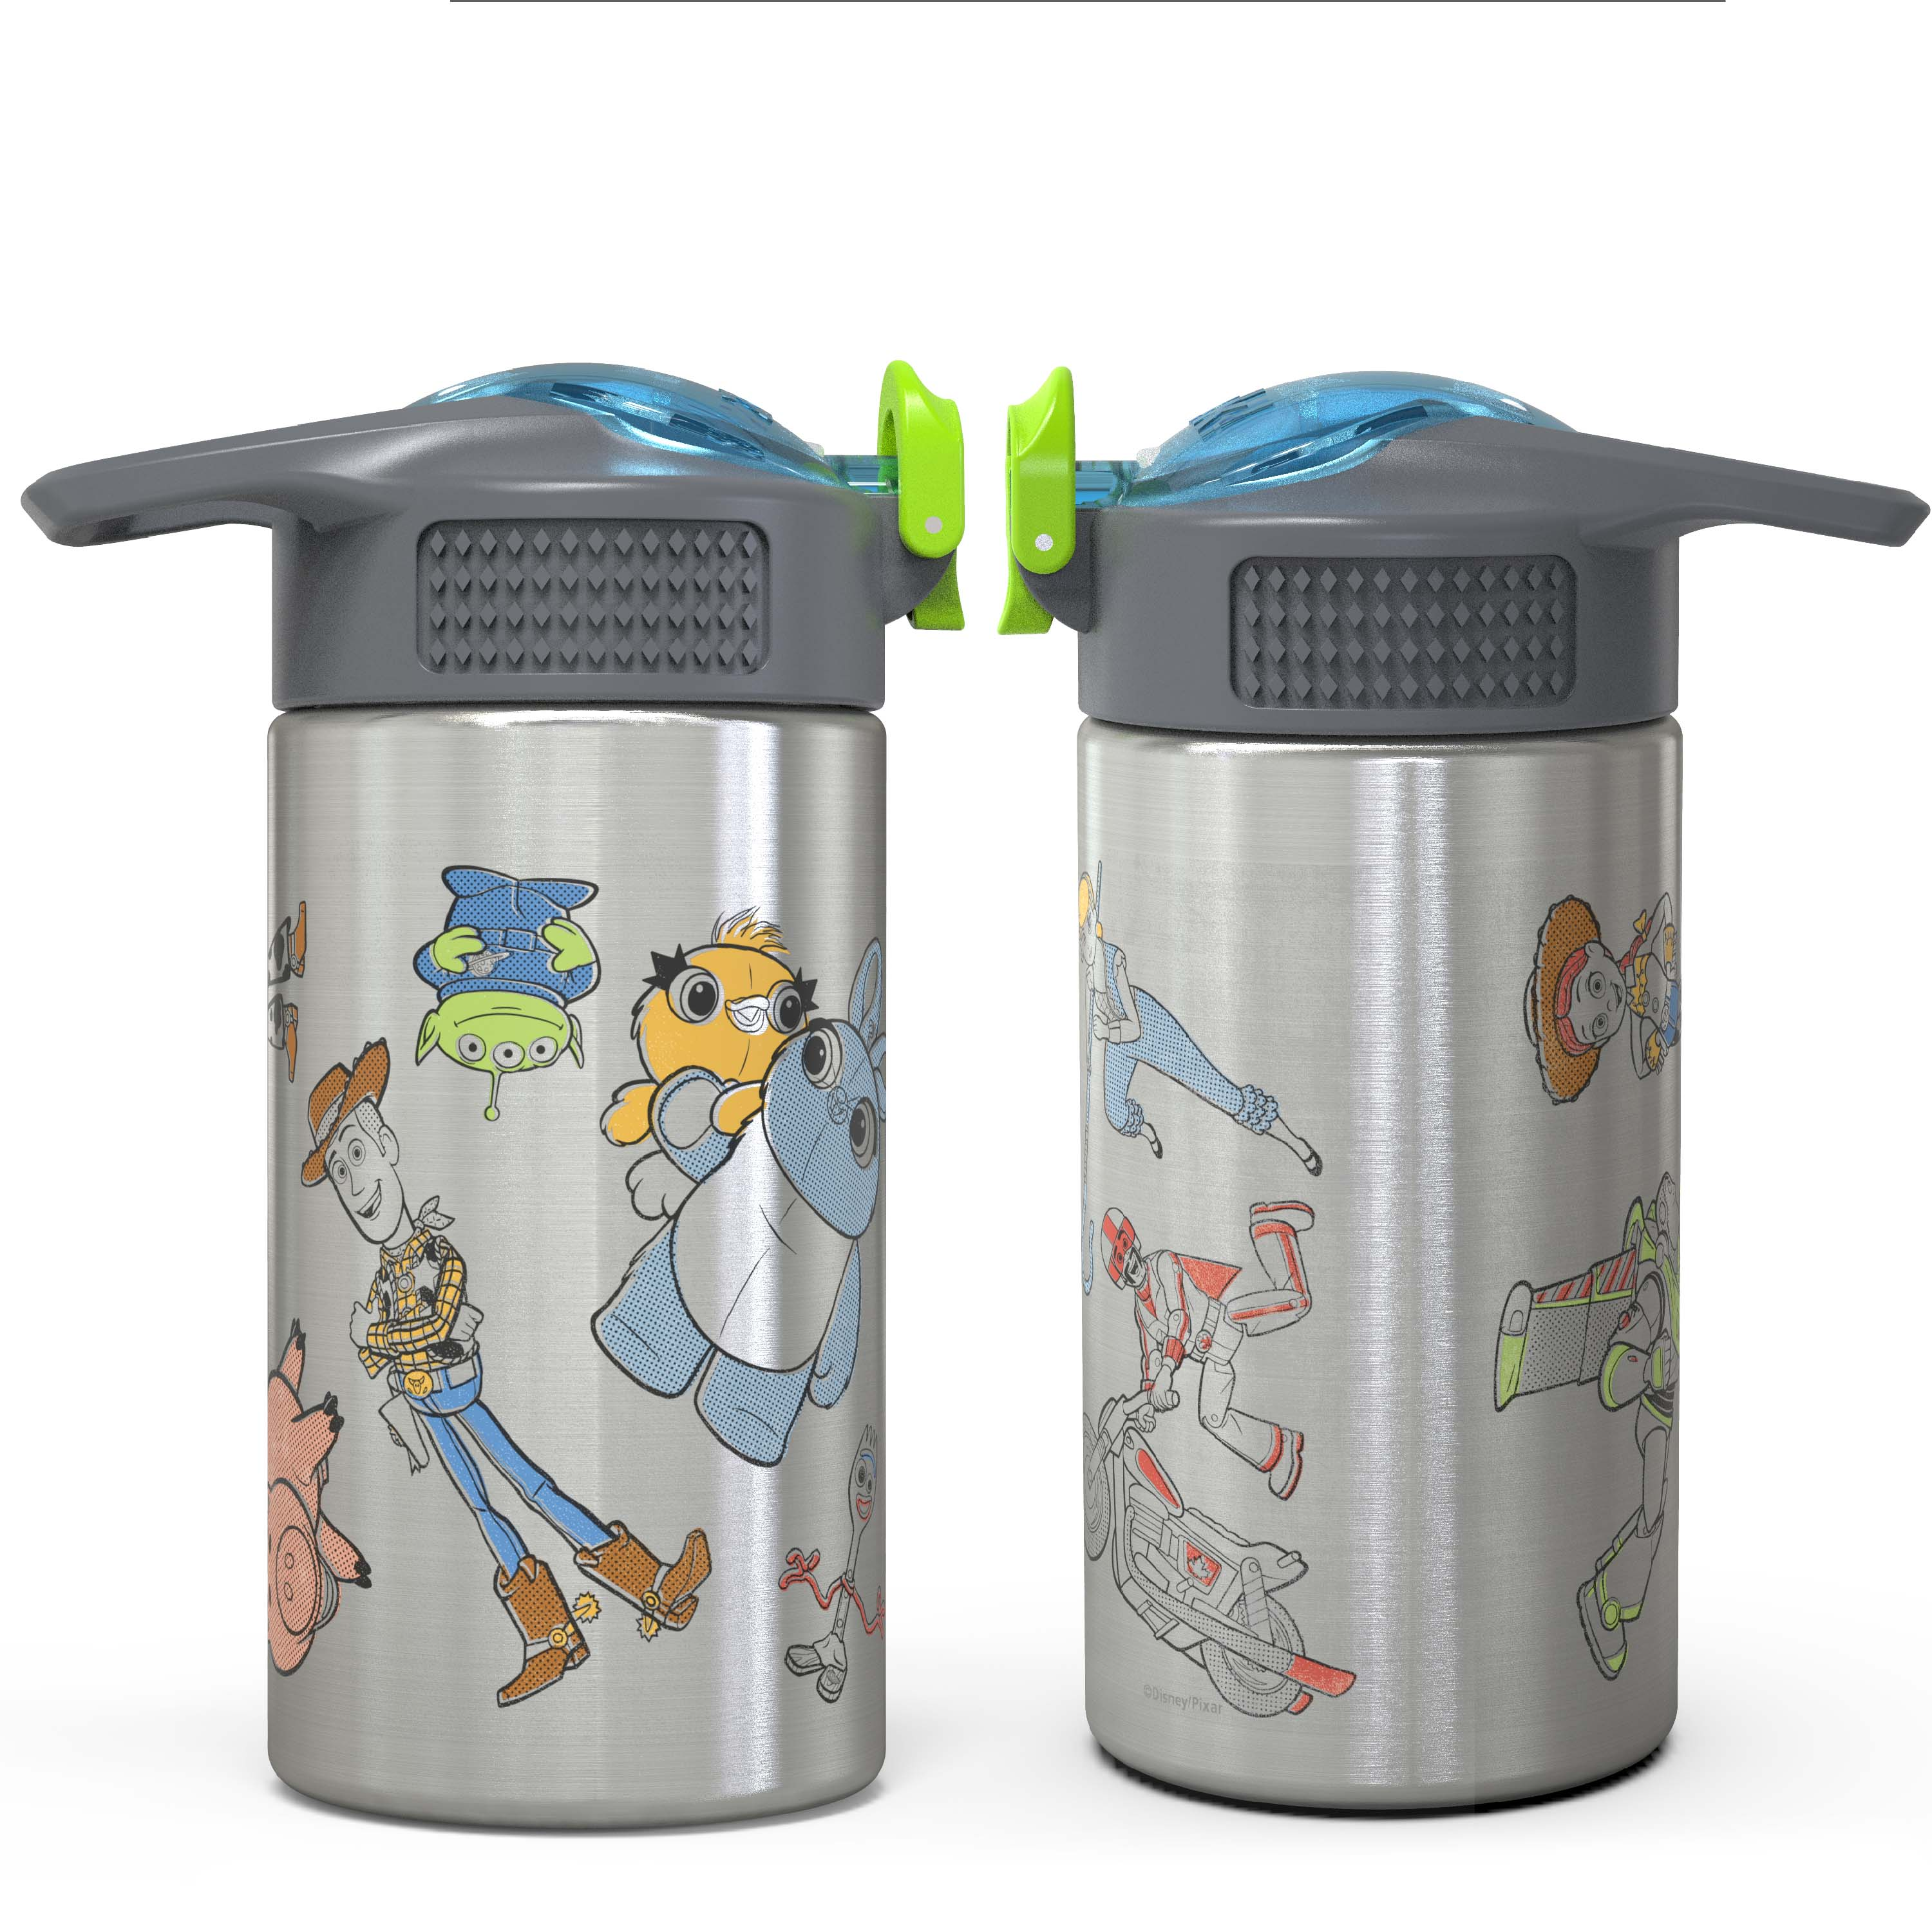 Toy Story 4 Movie 15.5 ounce Water Bottle, Buzz, Woody & Friends slideshow image 4